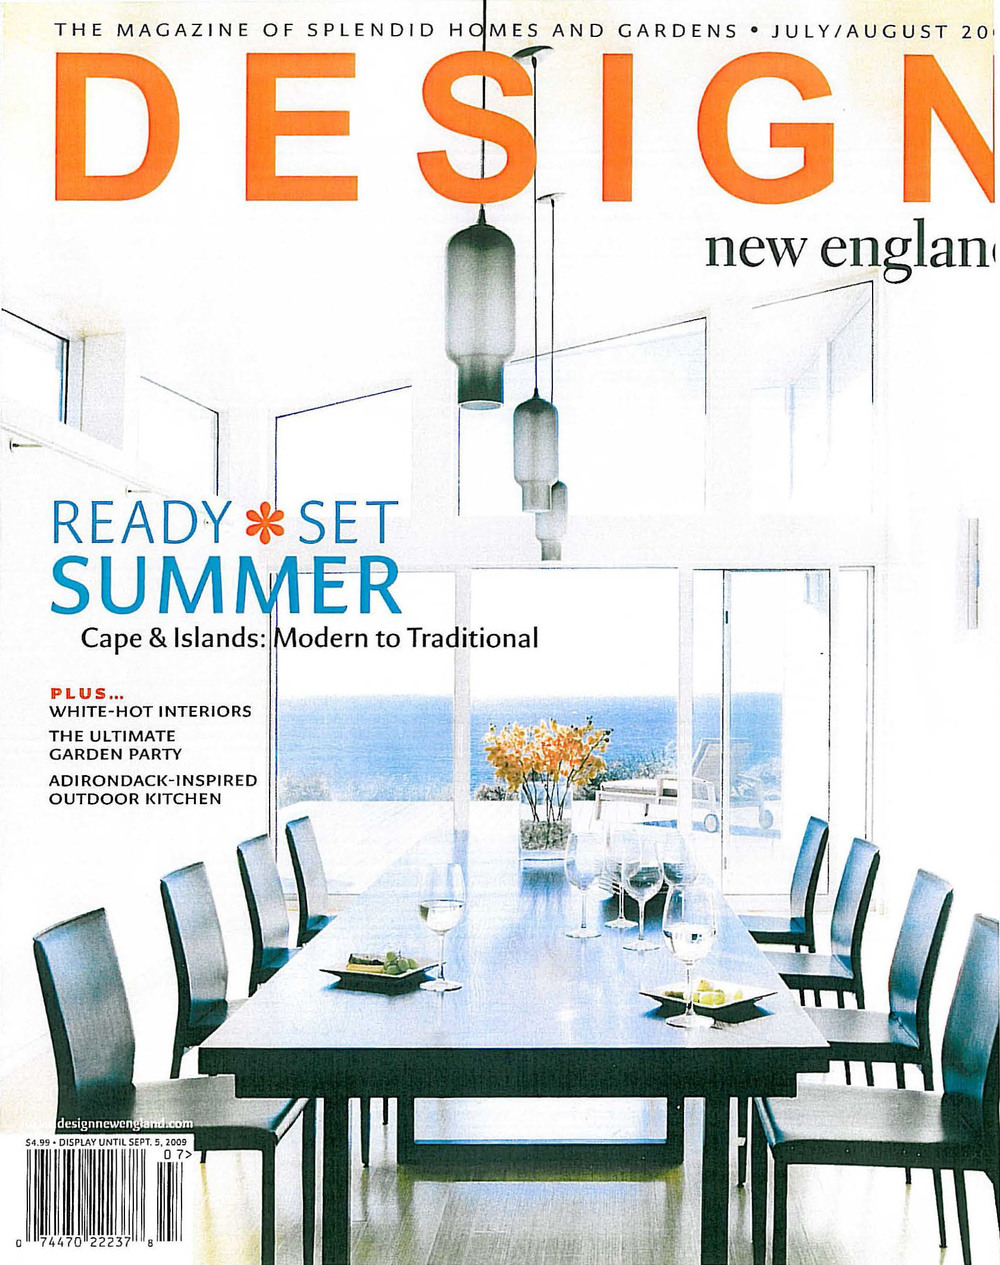 2009 Design New England - A Room With a View_Cover.jpg